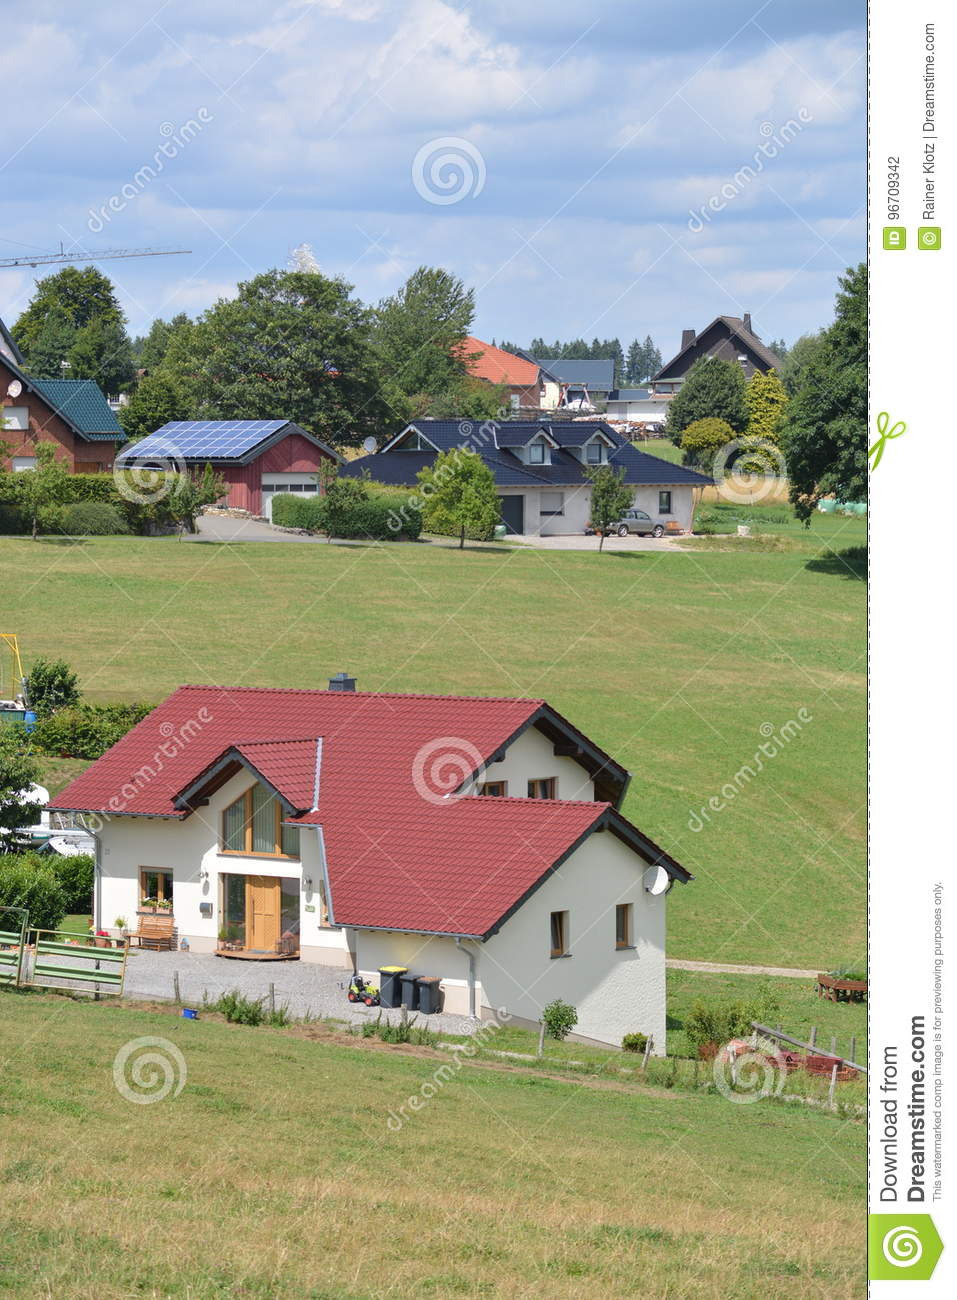 Www Beautiful Houses Com Elegant Eifel In Germany with Houses Editorial Graphy Image